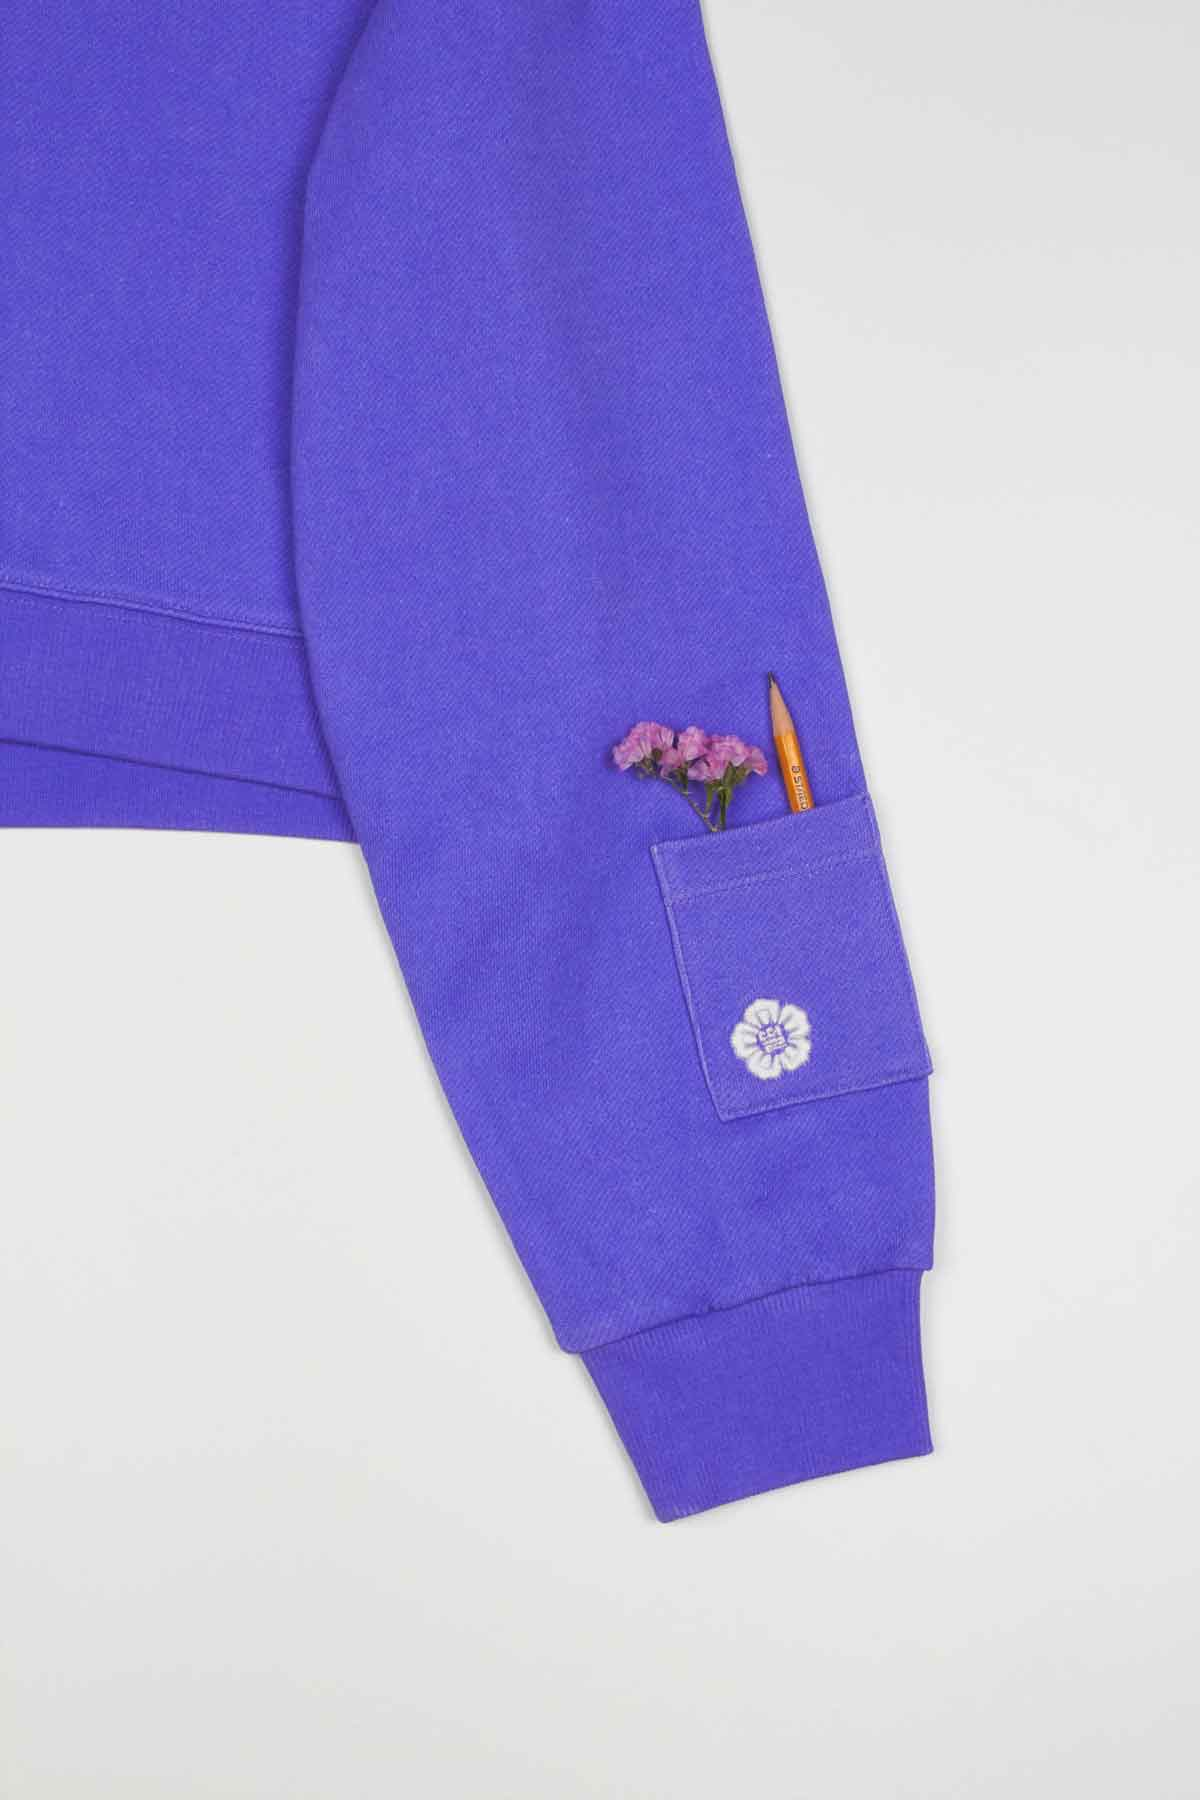 Photo of Violet Kush Women's Cropped Hoodie, number 7